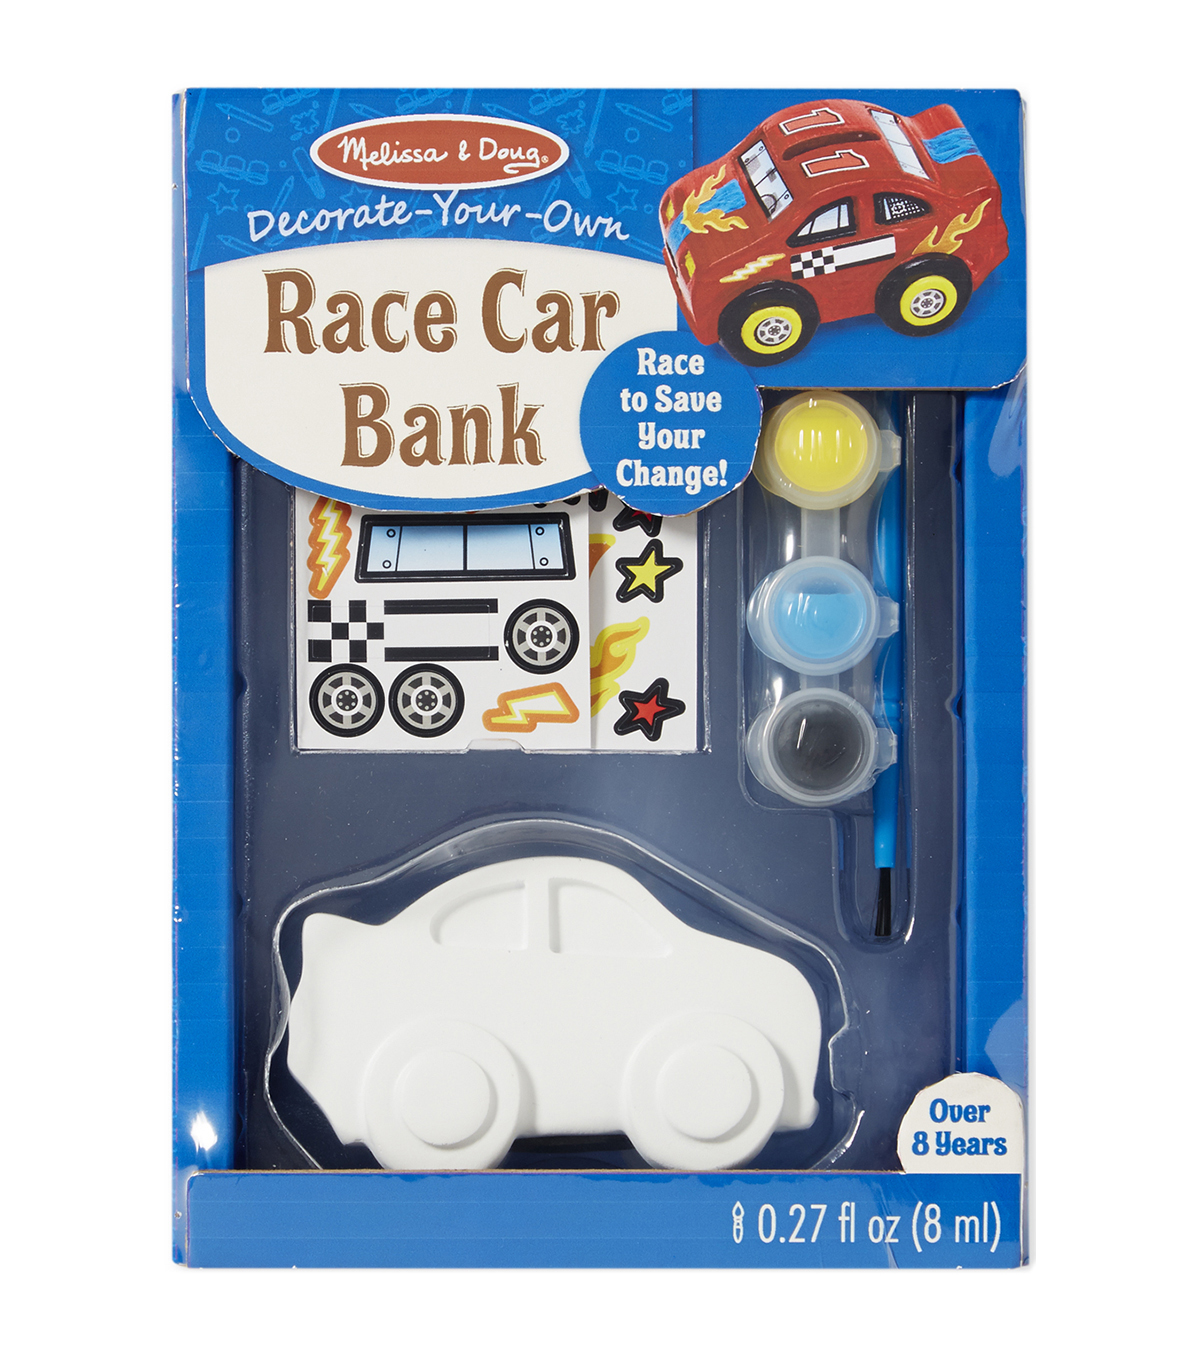 Melissa & Doug Decorate-Your-Own Race Car Bank Craft Kit